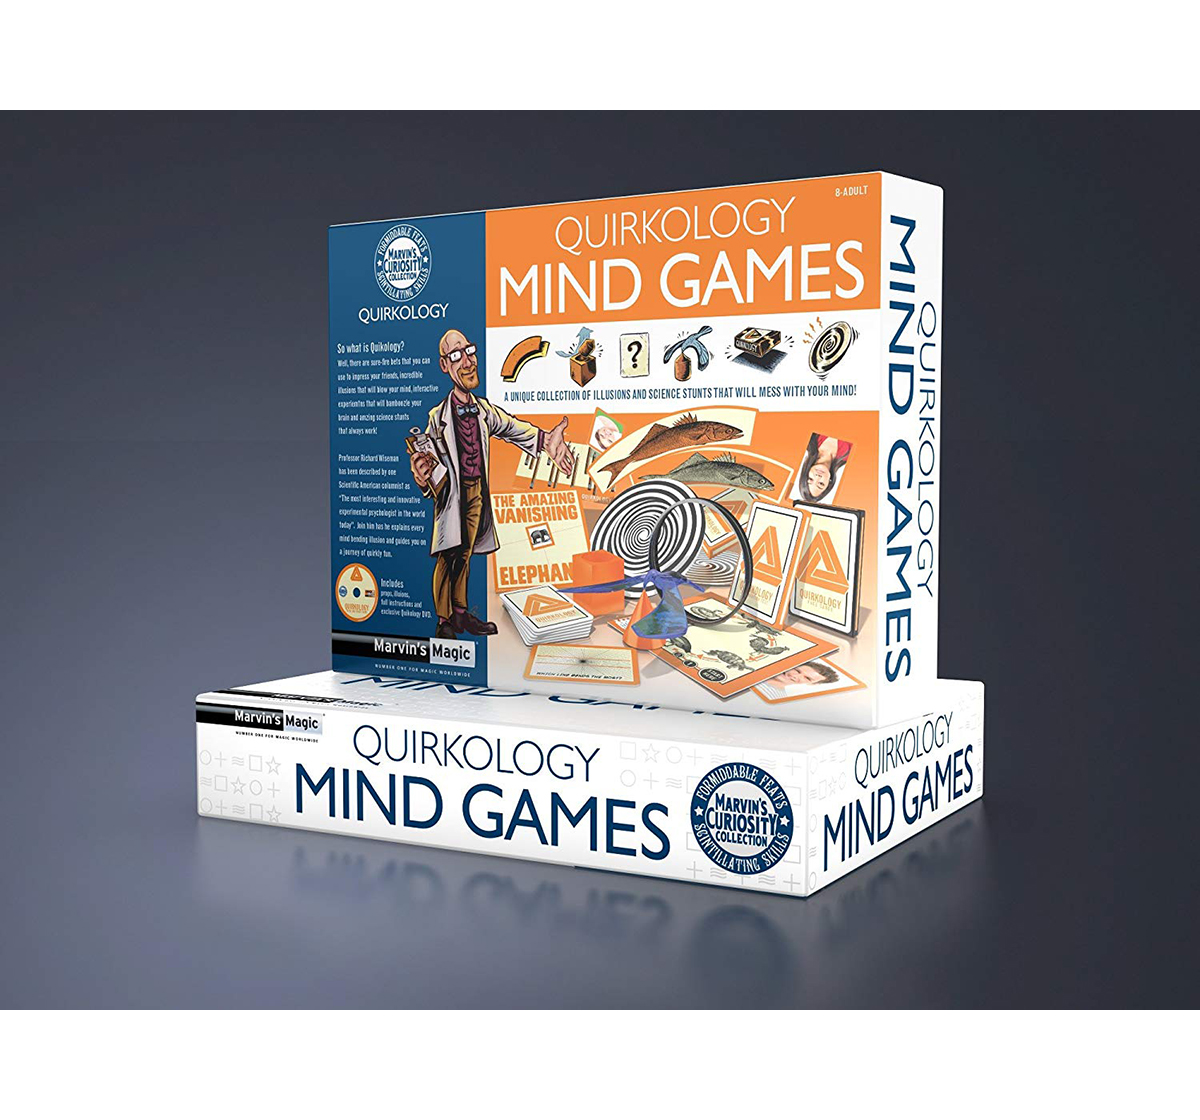 Marvin's Magic | Marvin'S Magic Quirkology Mind Games Impulse Toys for Kids age 8Y+